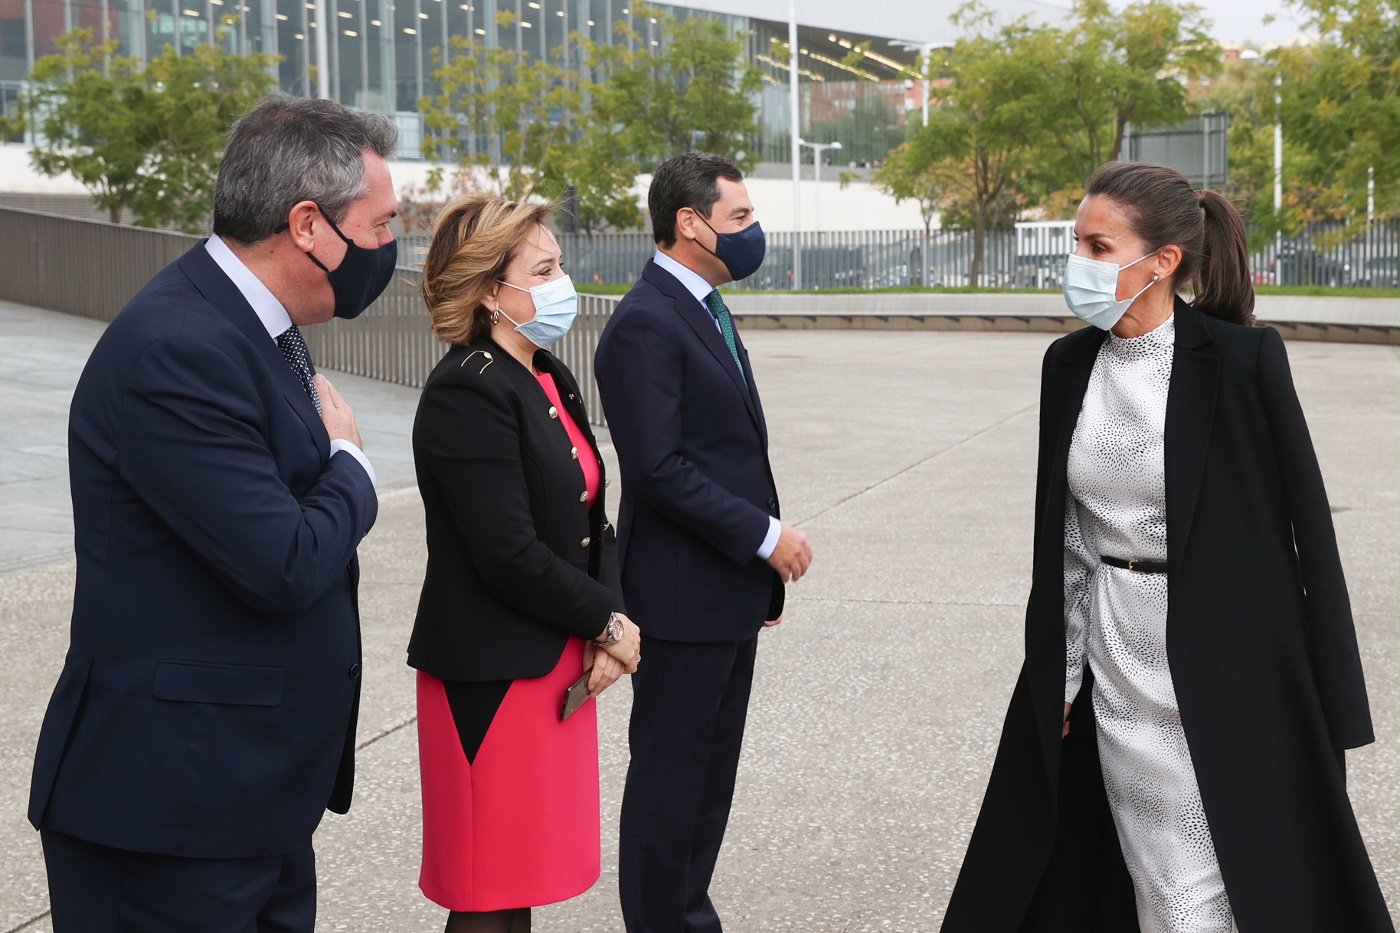 Queen Letizia of Spain attended Tourism Summit in Seville